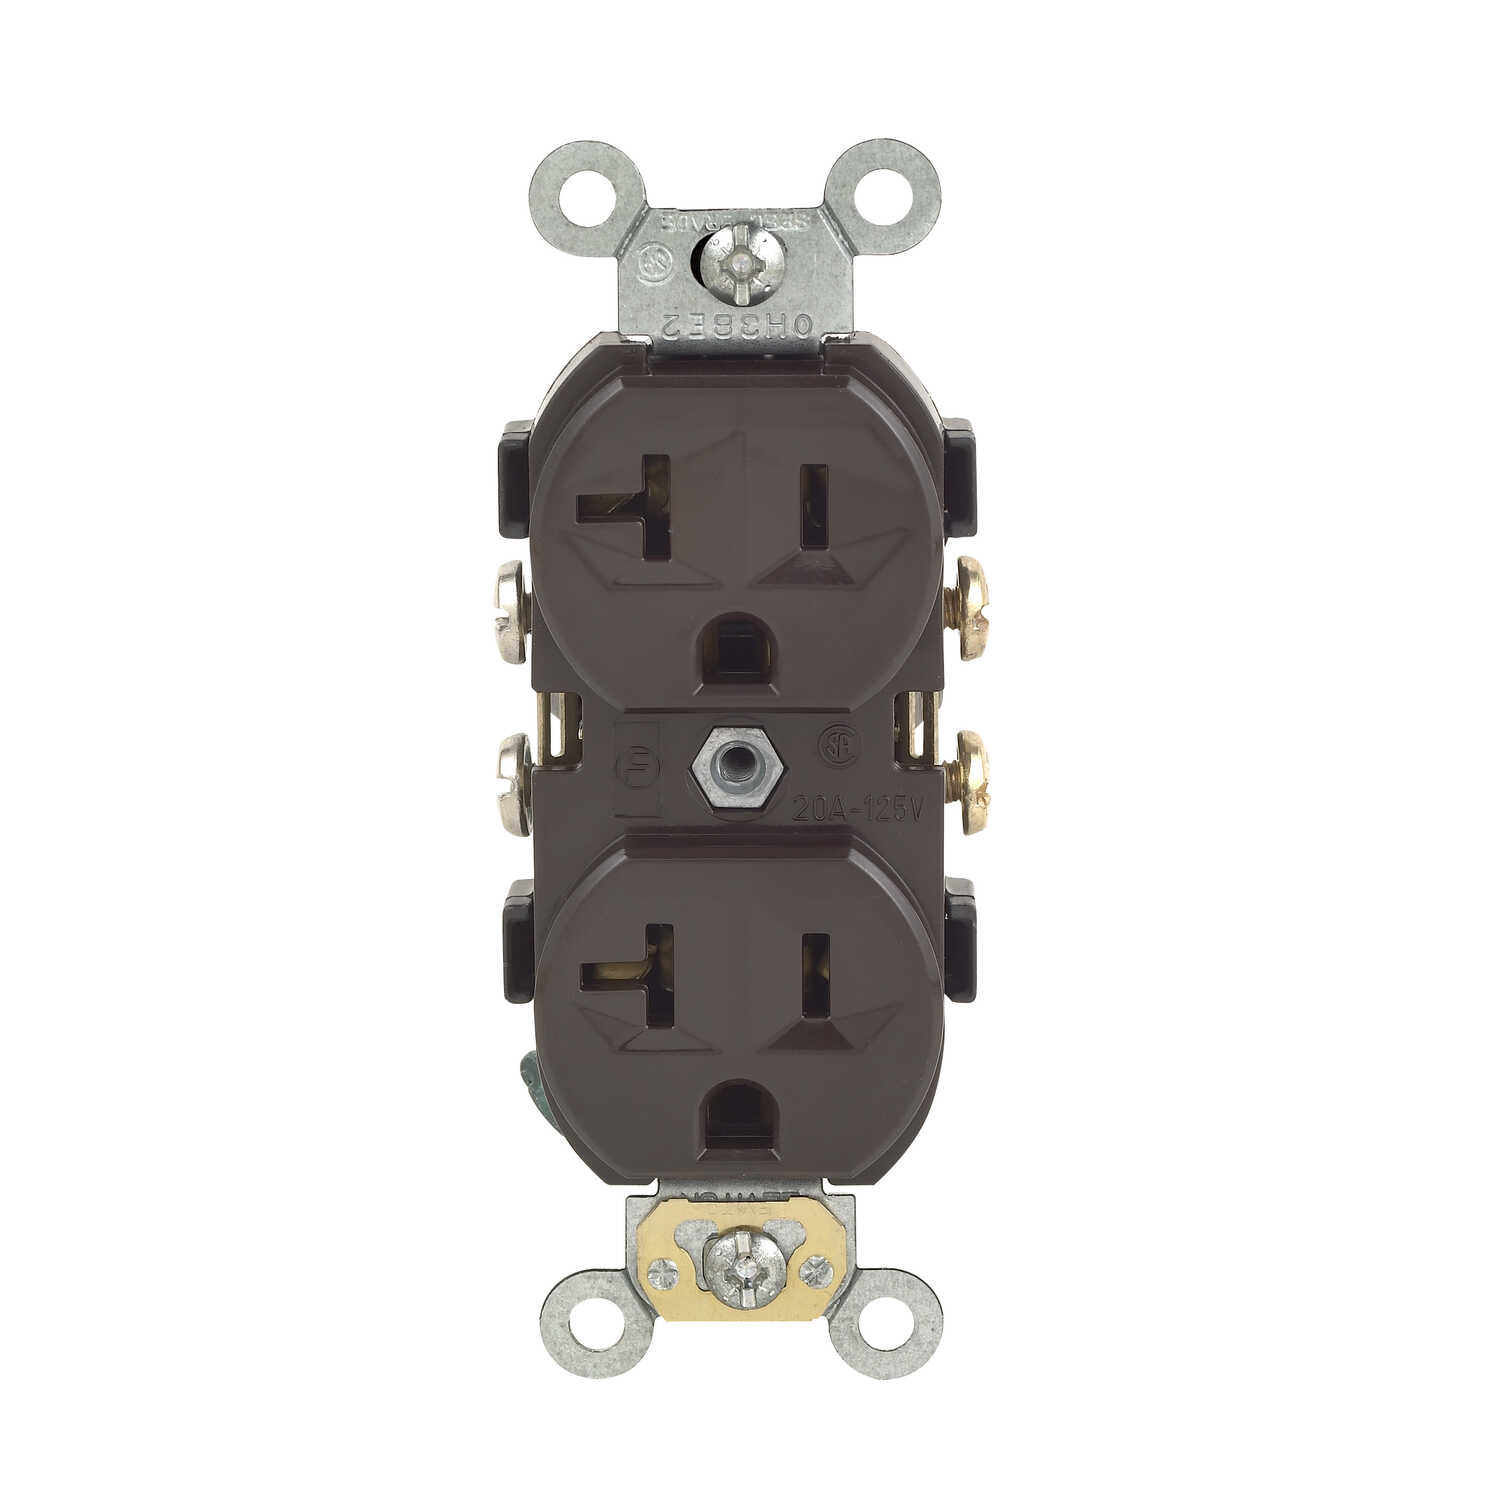 Leviton  20 amps 125 volt Duplex  Brown  Outlet  5-20R  Commerical and Residential  1 pk